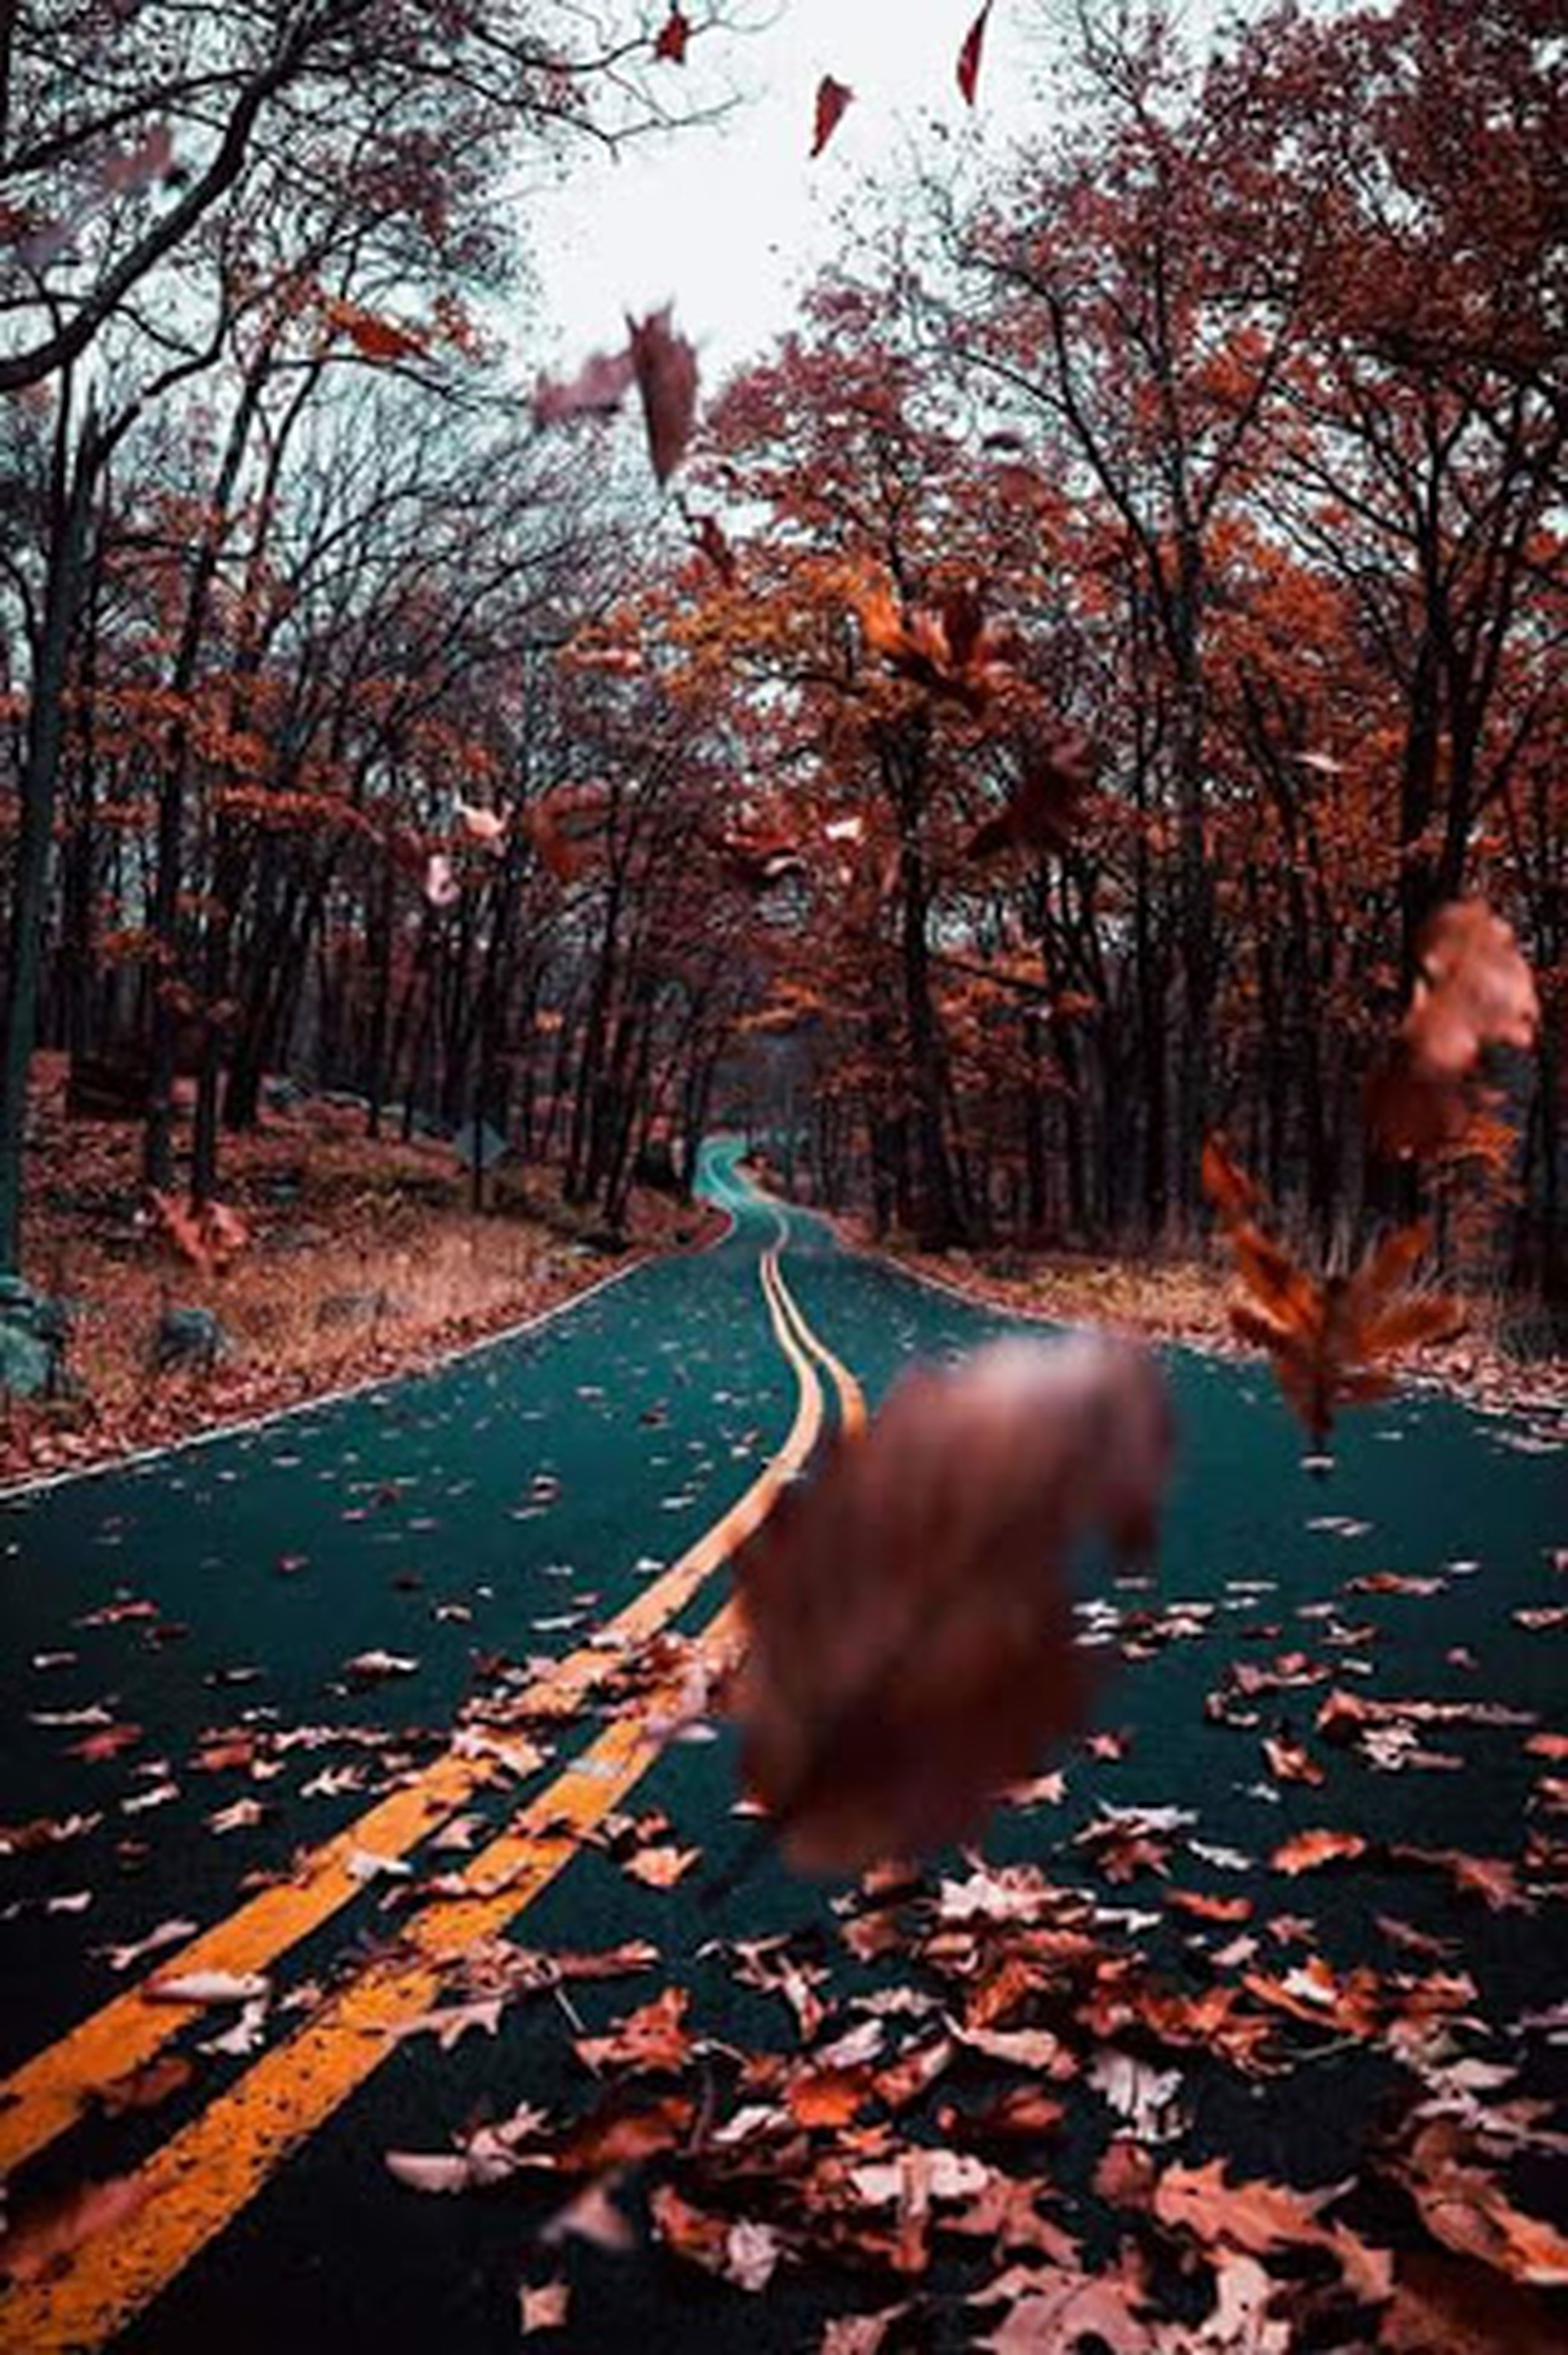 autumn, tree, leaf, nature, change, road, no people, outdoors, day, forest, tranquility, beauty in nature, scenics, branch